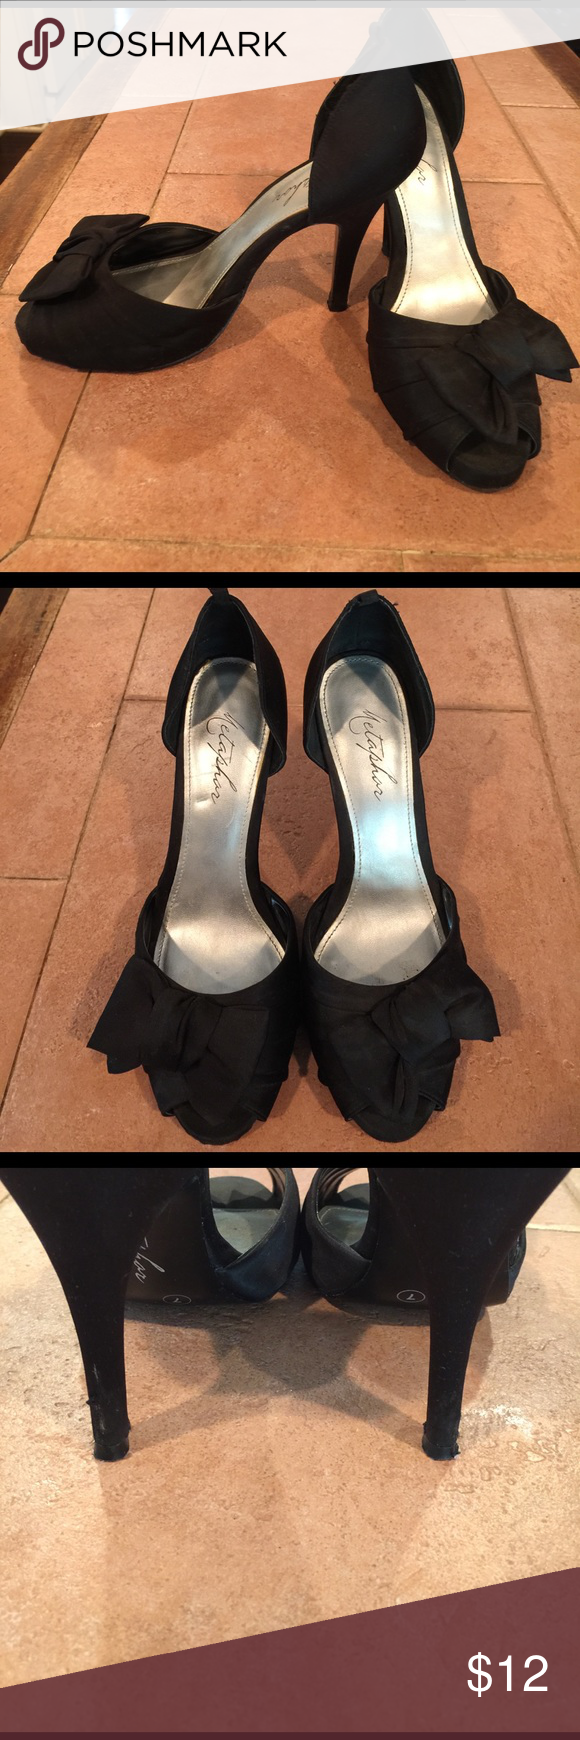 Black heels Peep toes with bow detail, slight scuff on heels and moderate wear on bottoms. Metaphor Shoes Heels